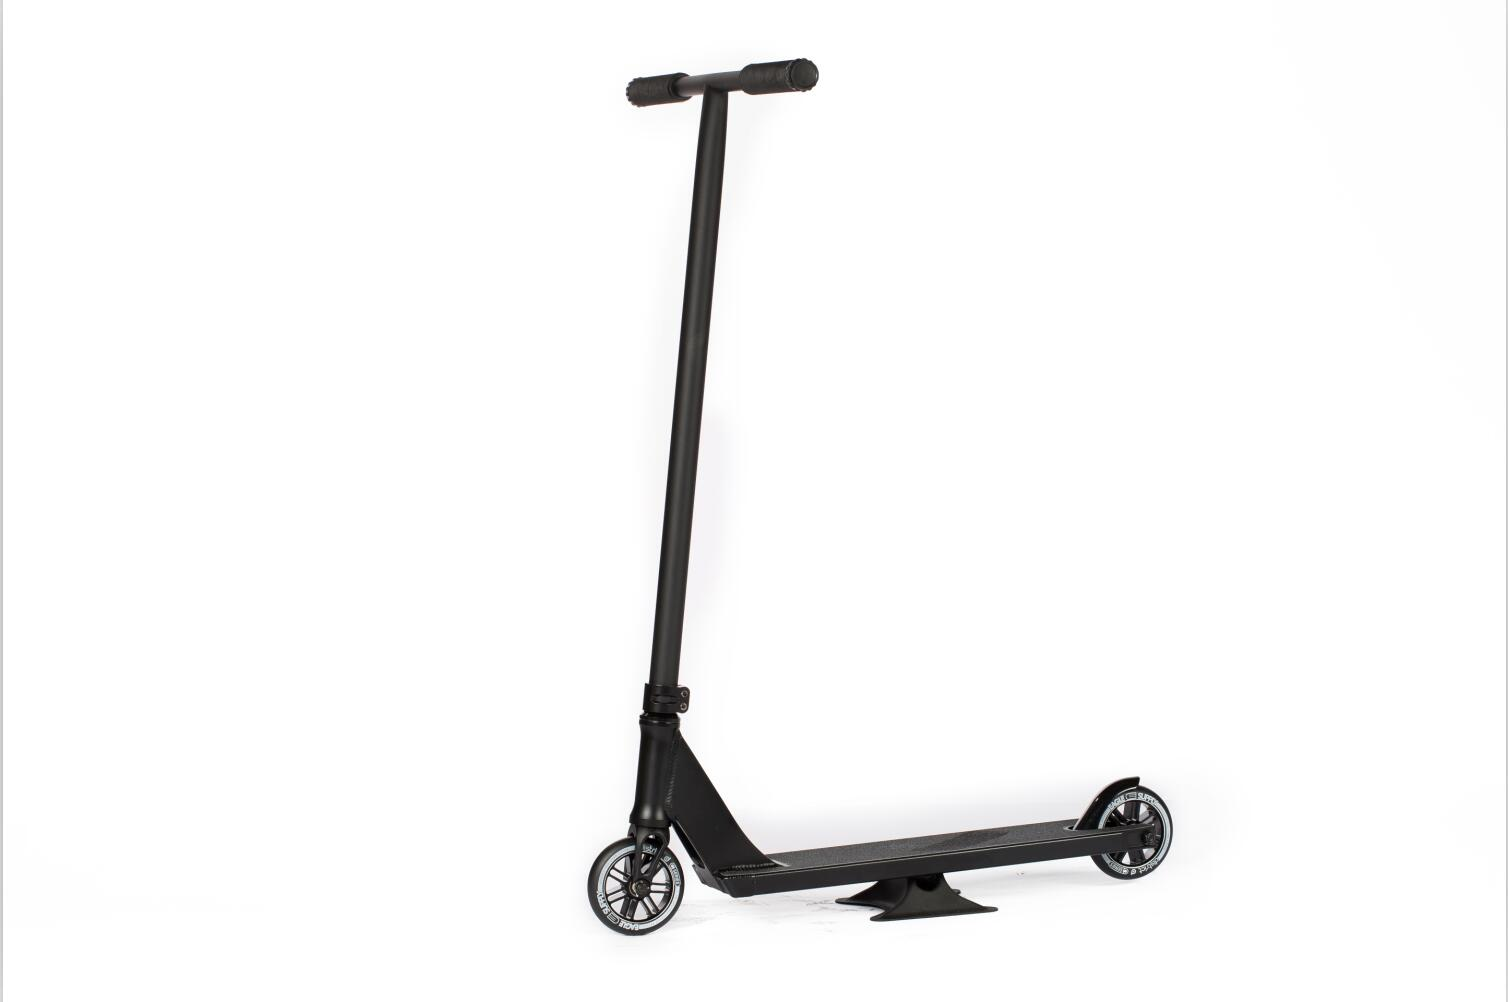 exreme professional scooter